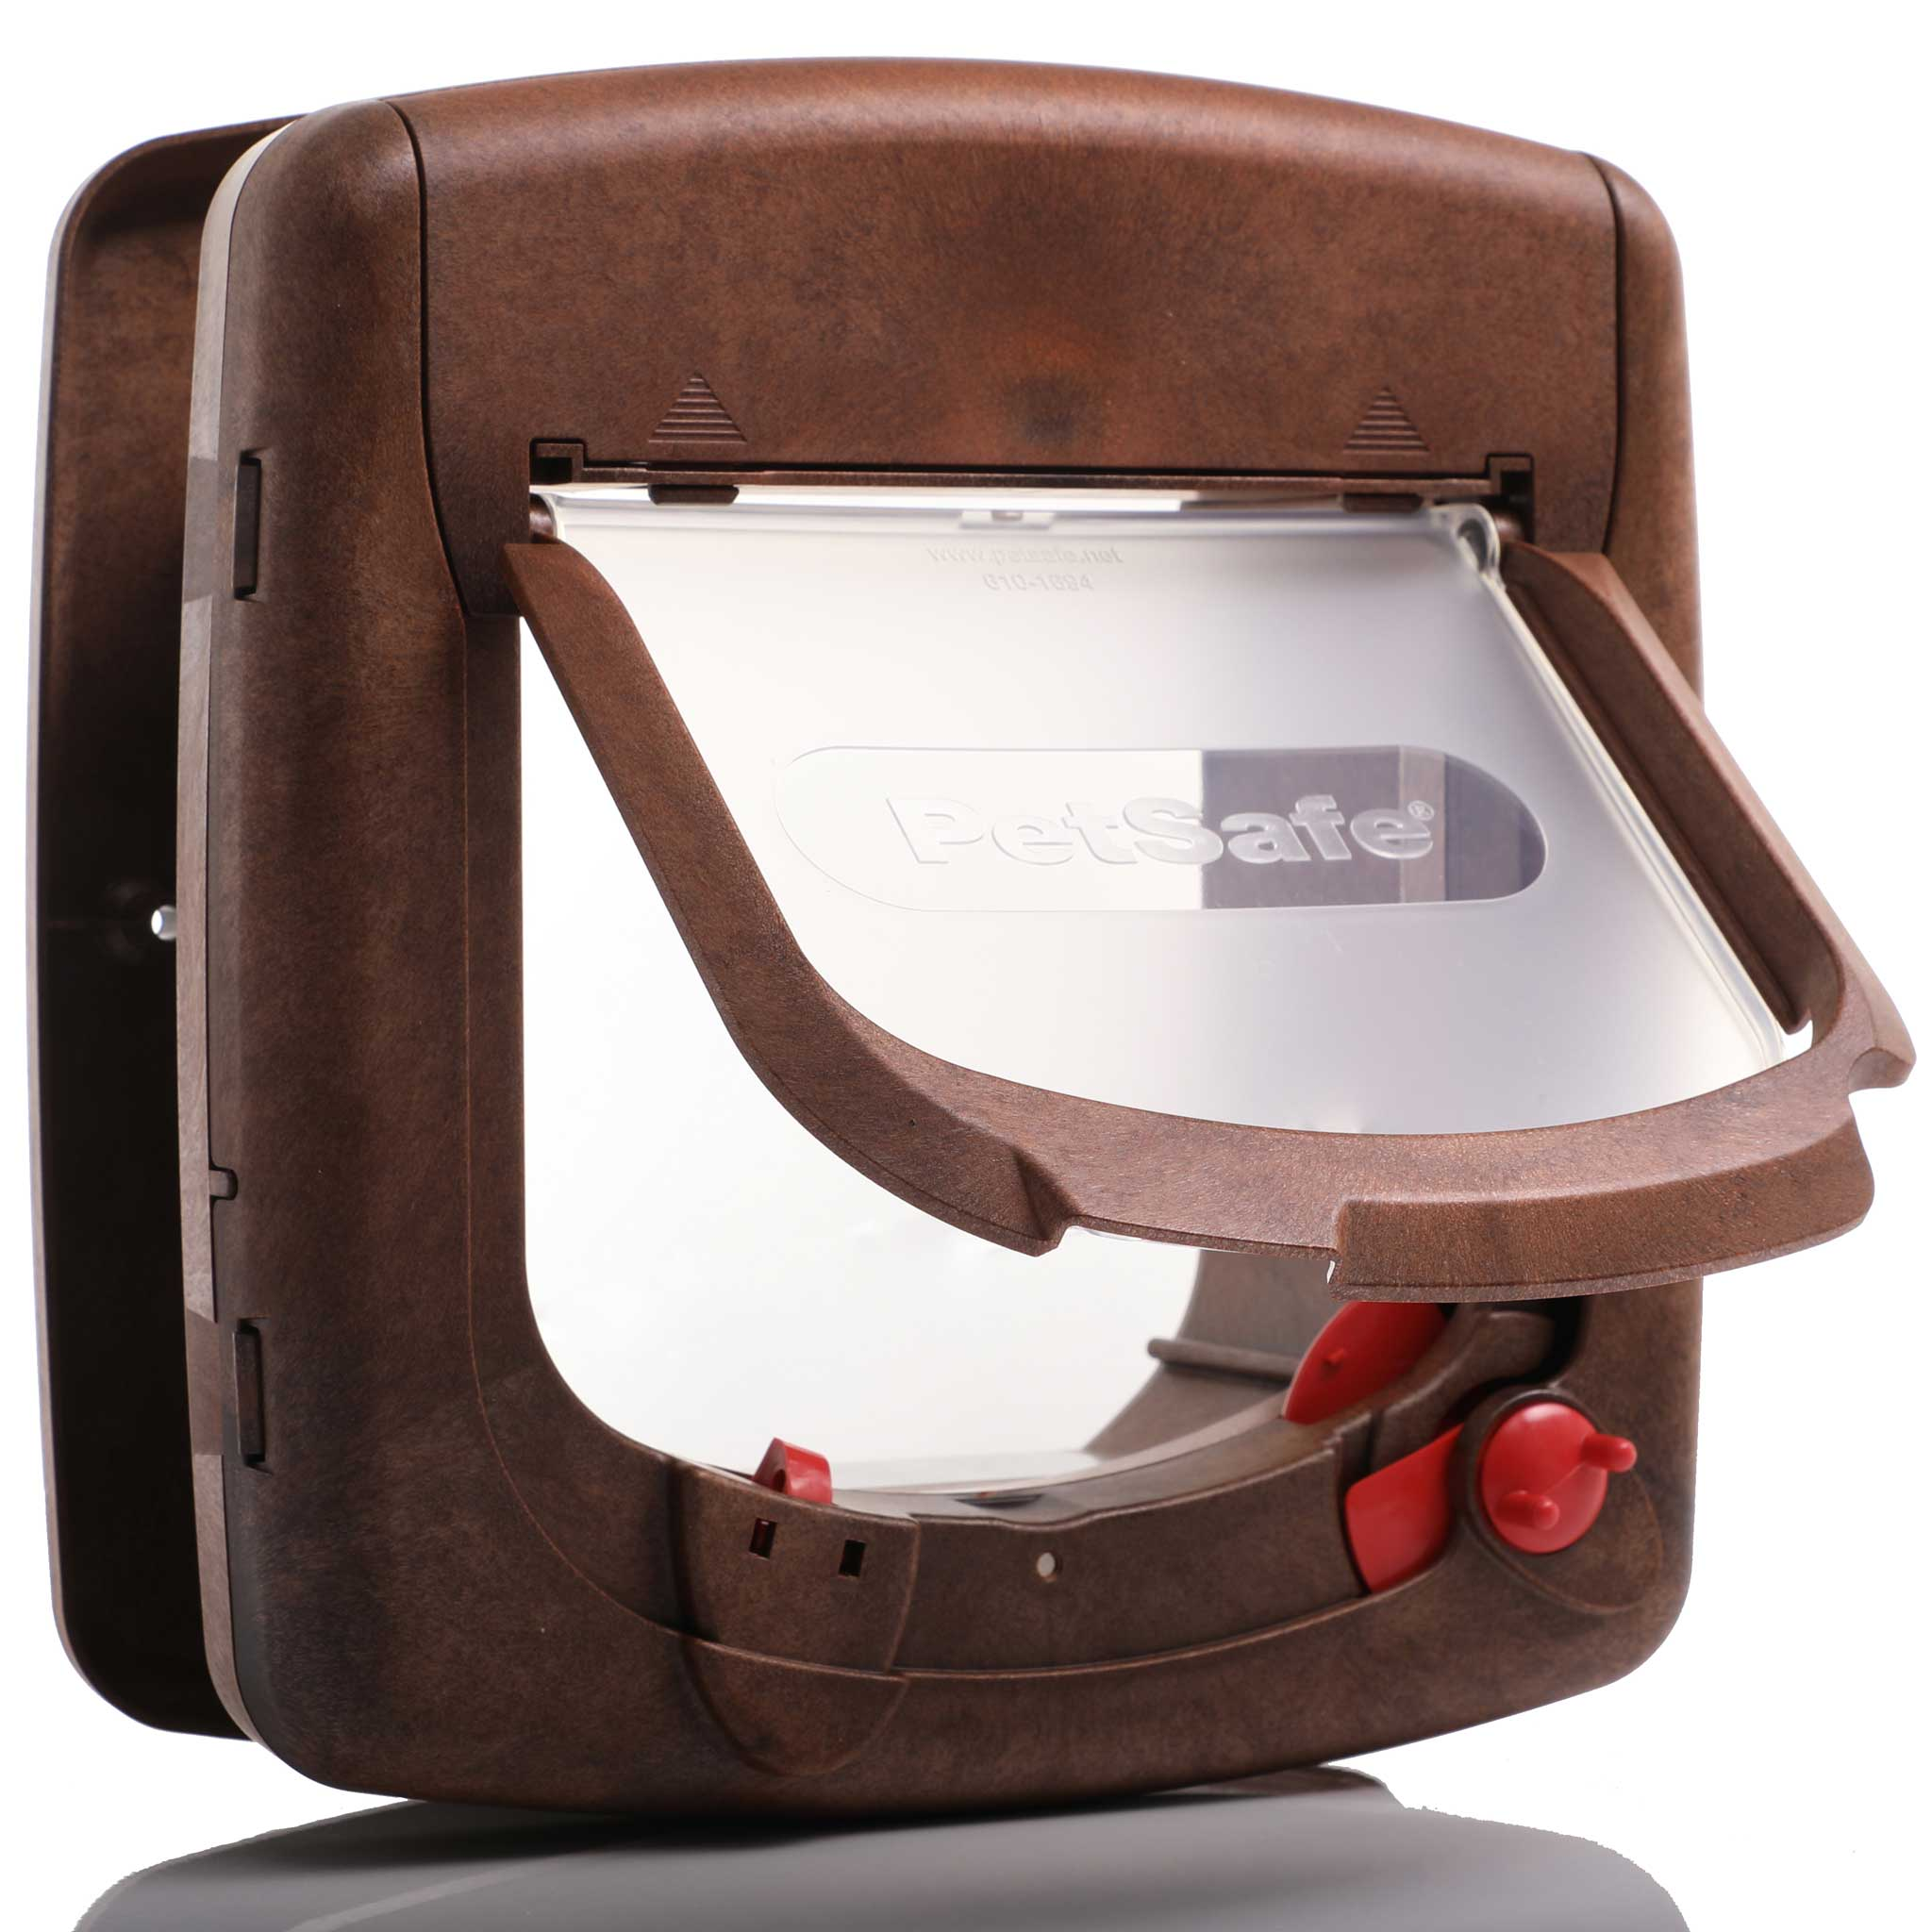 Deluxe magnetic cat flap suitable for doors up tp 50mm thick